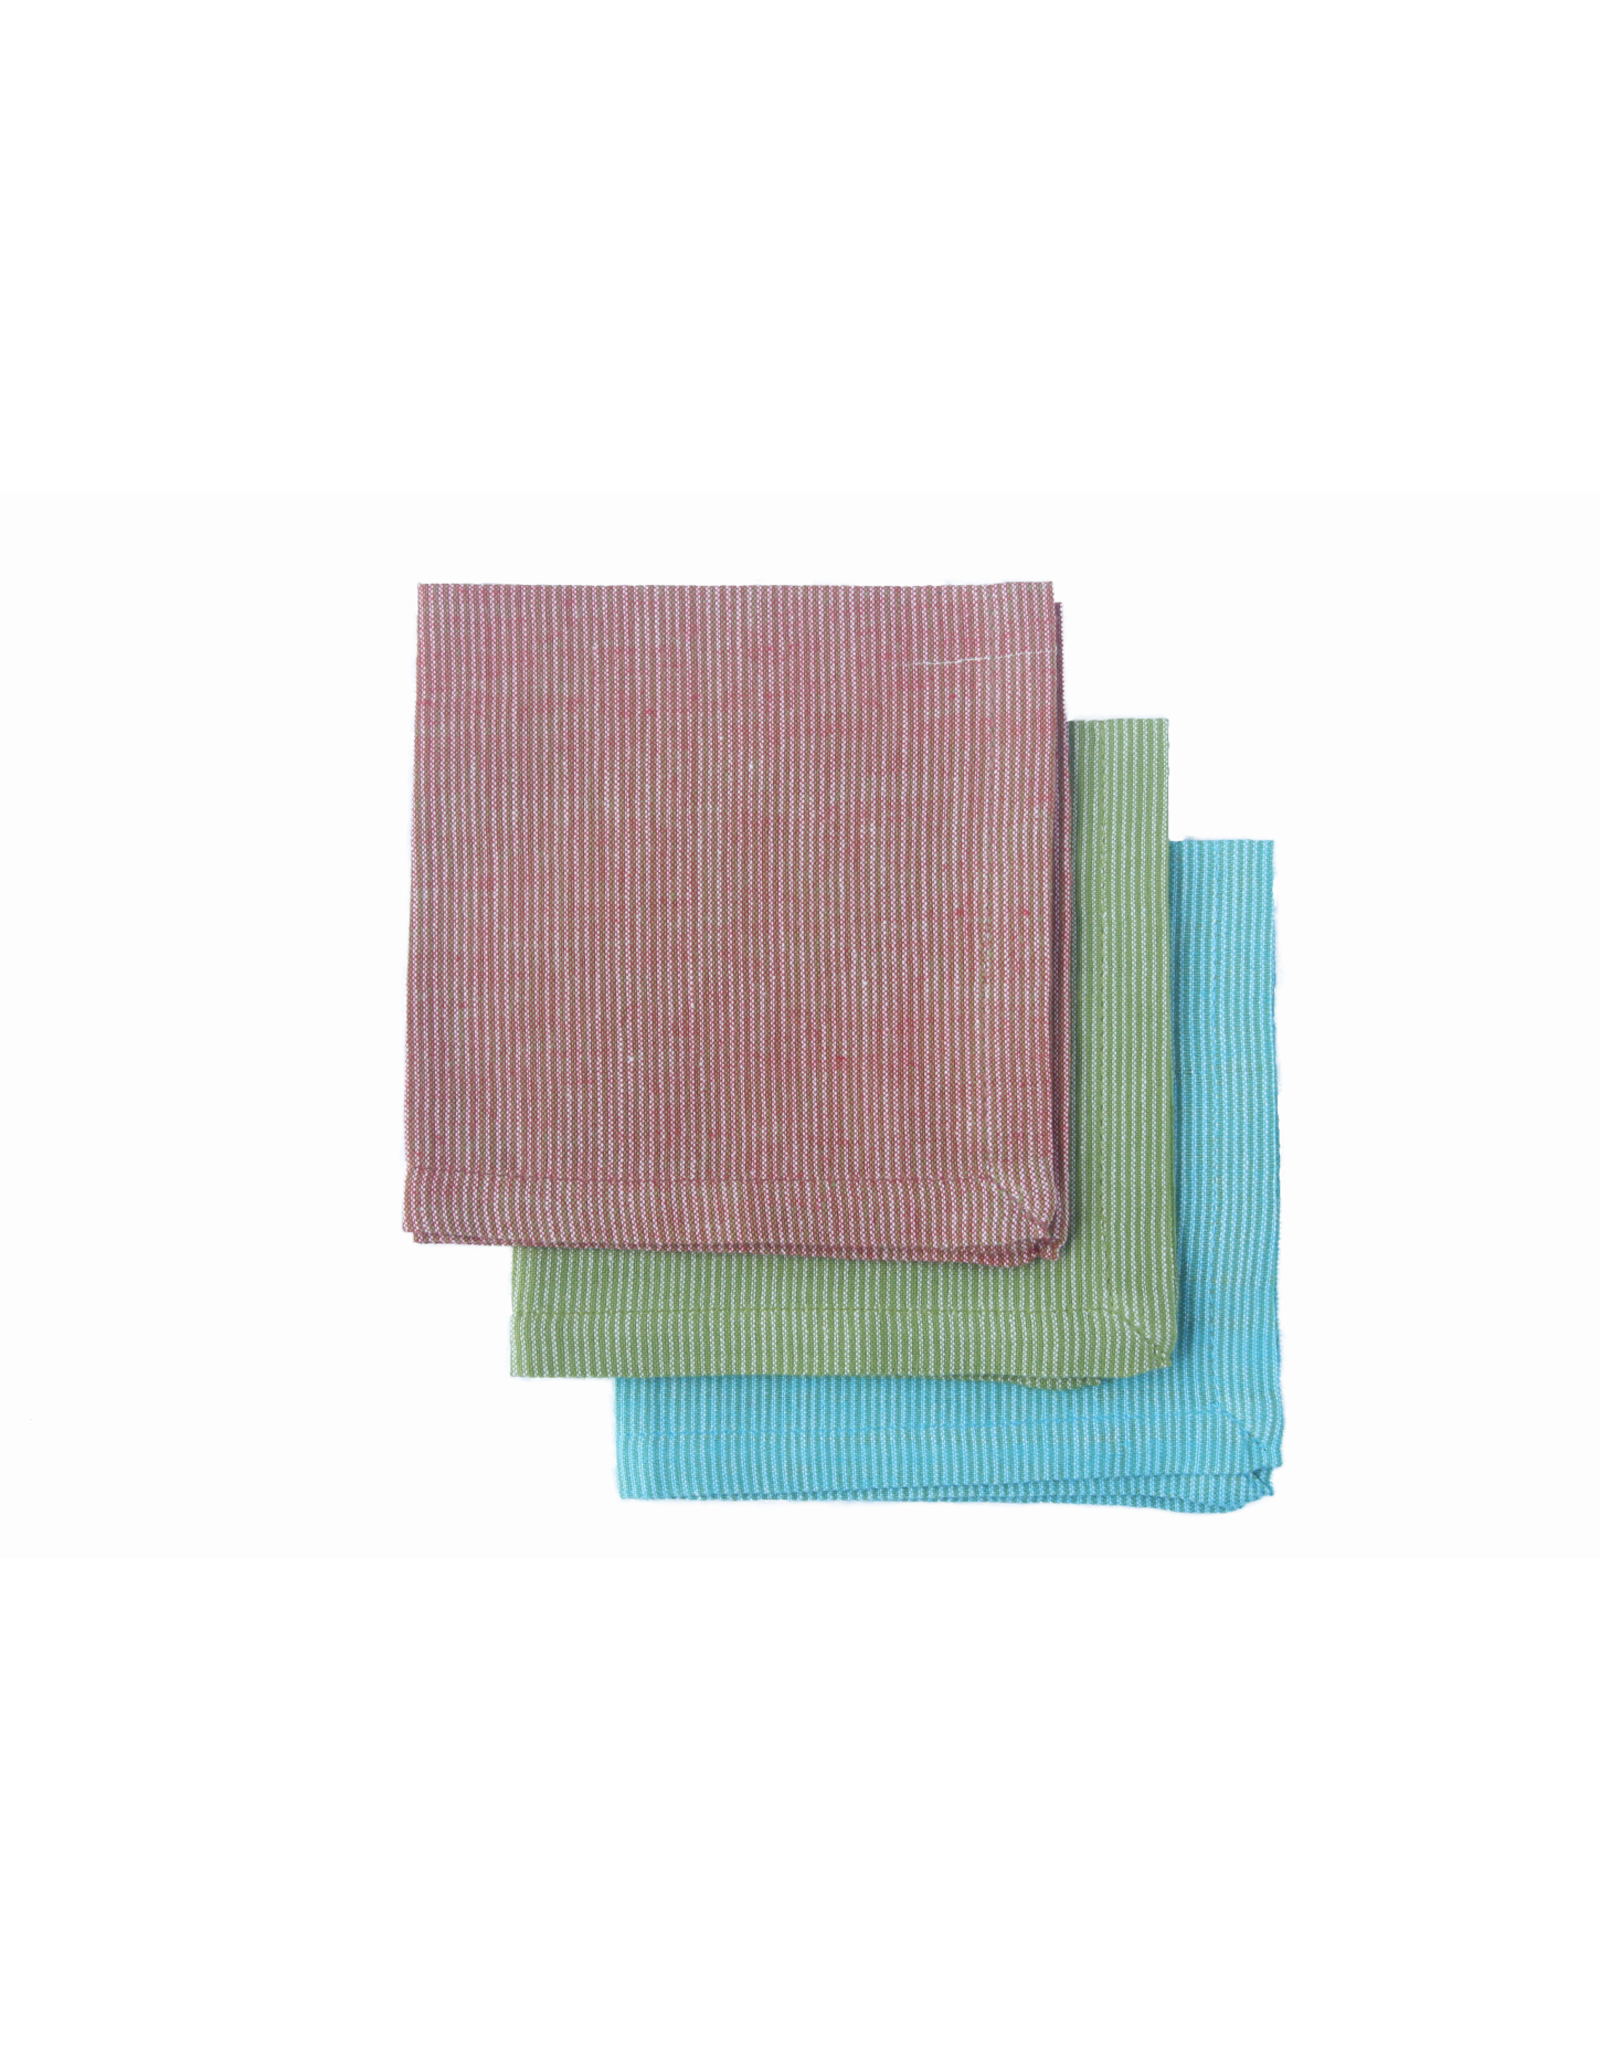 9 x 9 Cotton Handkerchief Charlotte, India